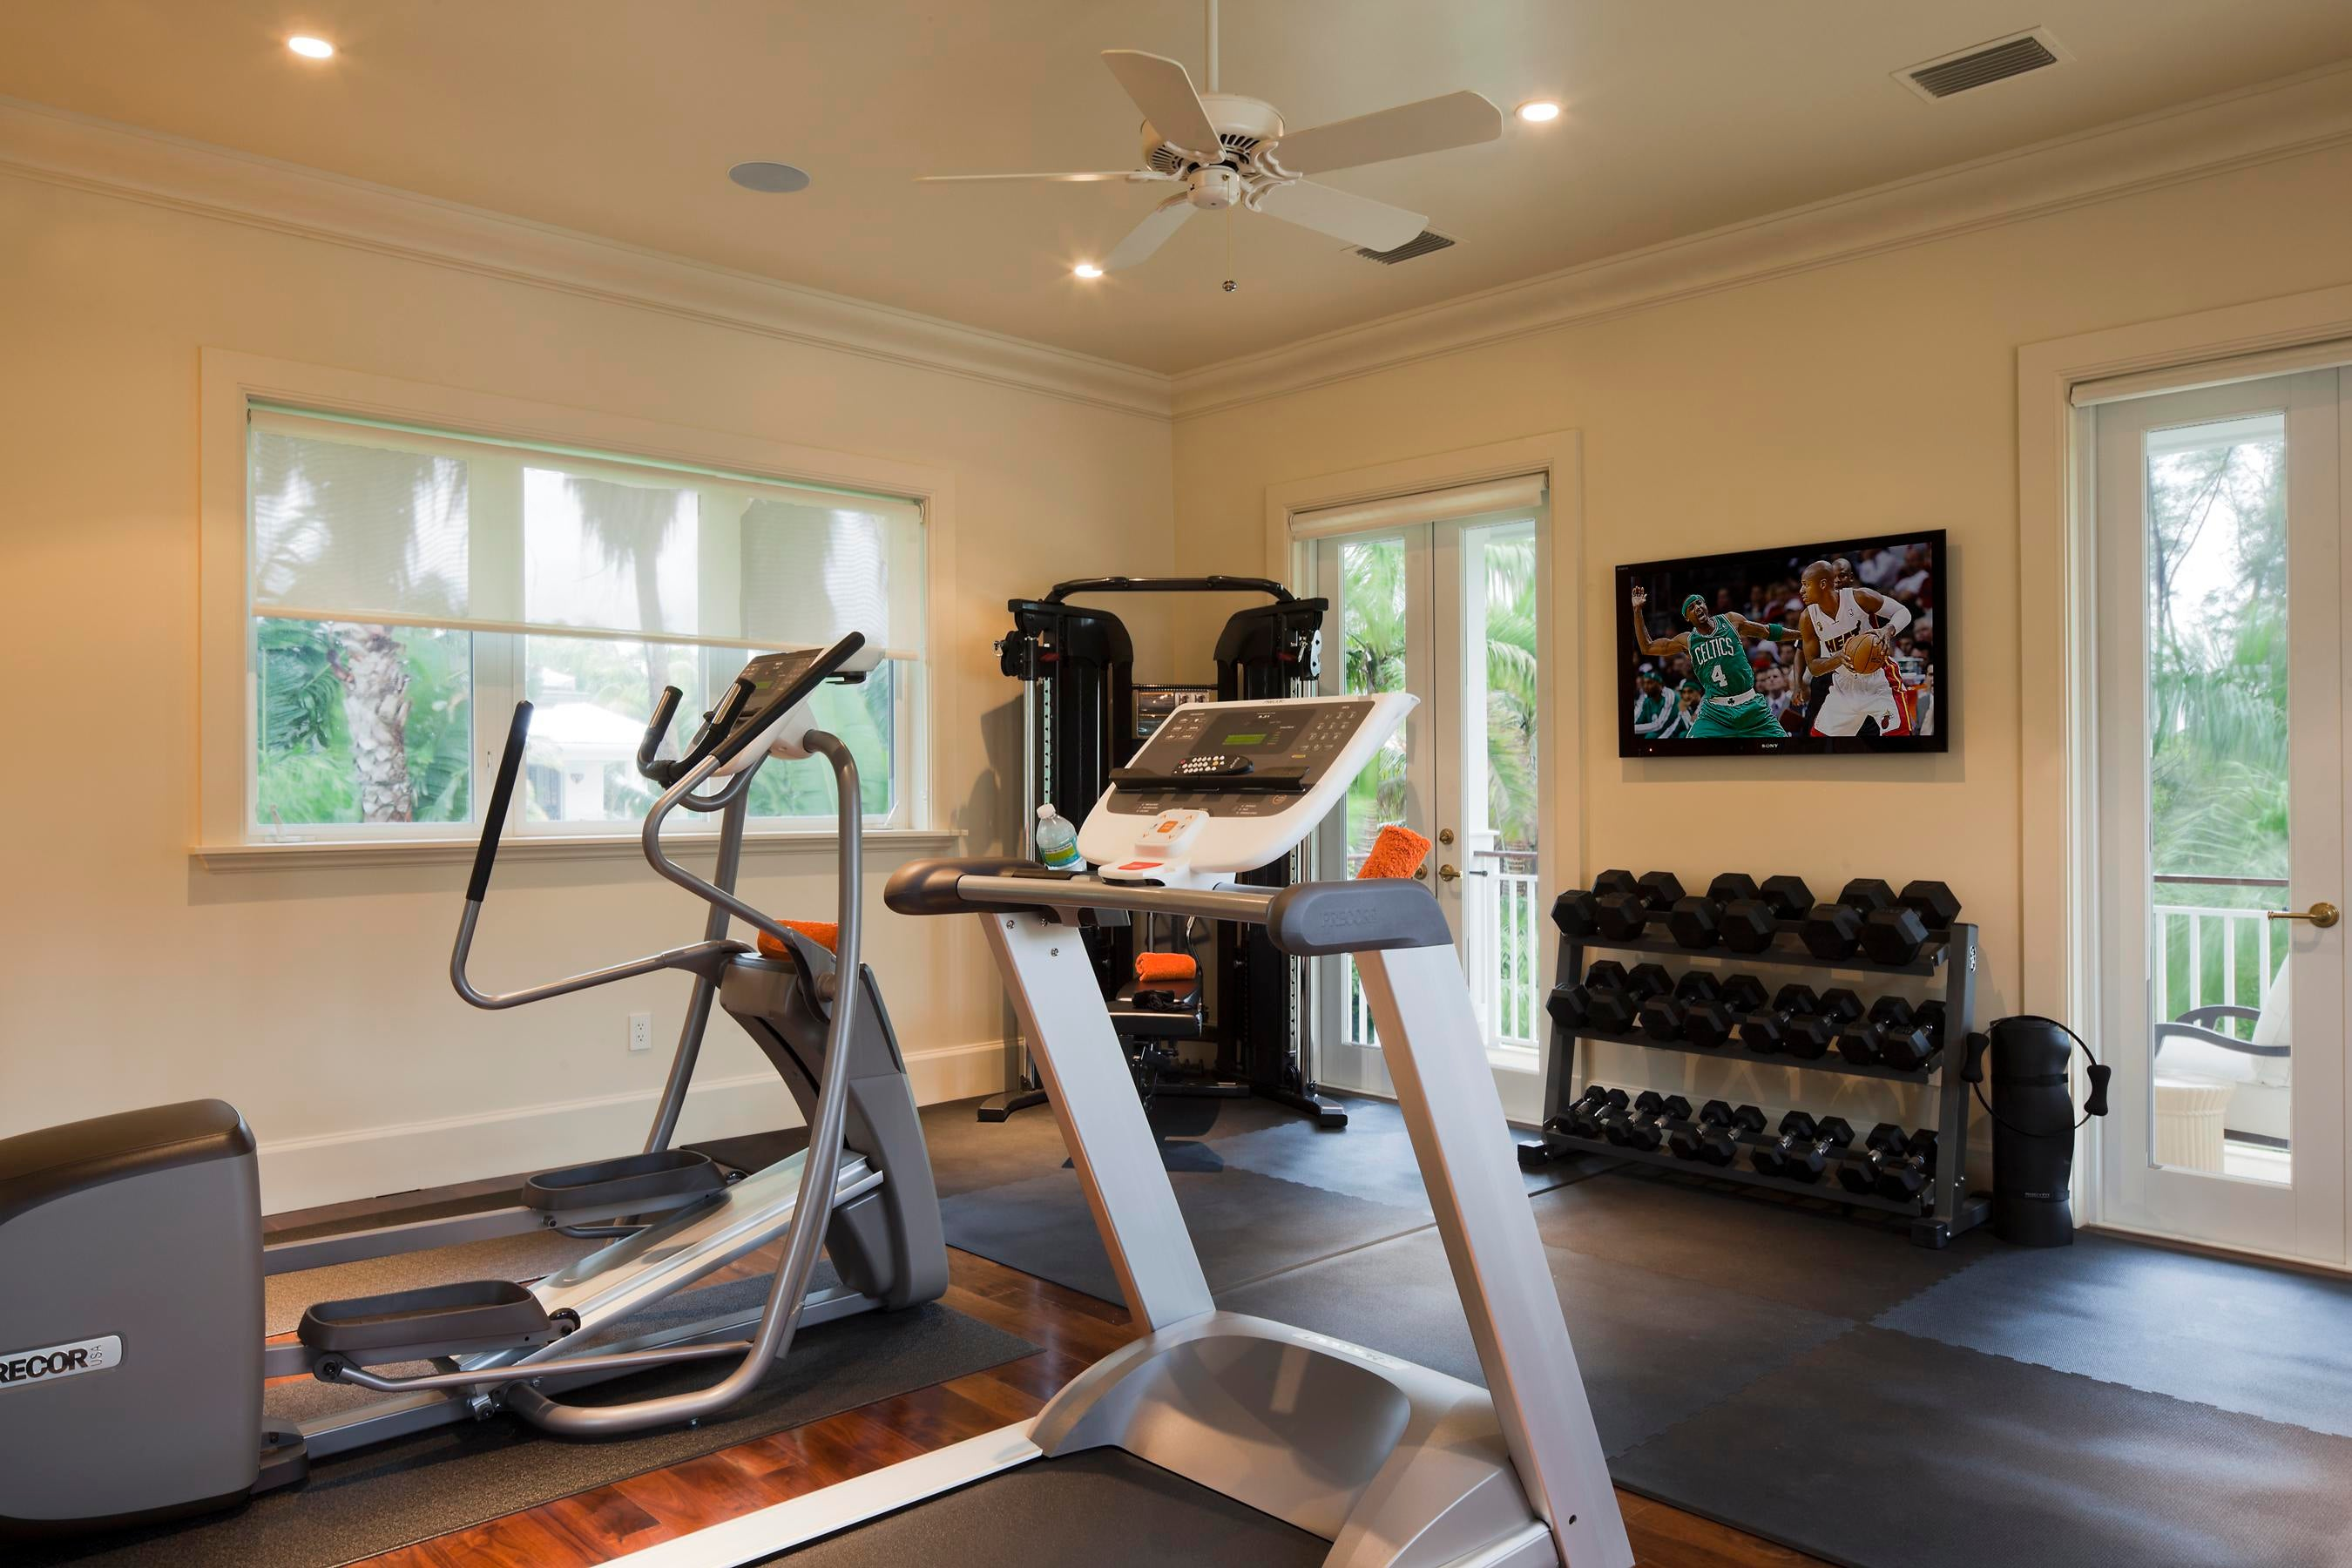 Massage room ideas home gym traditional with walk in stone shower